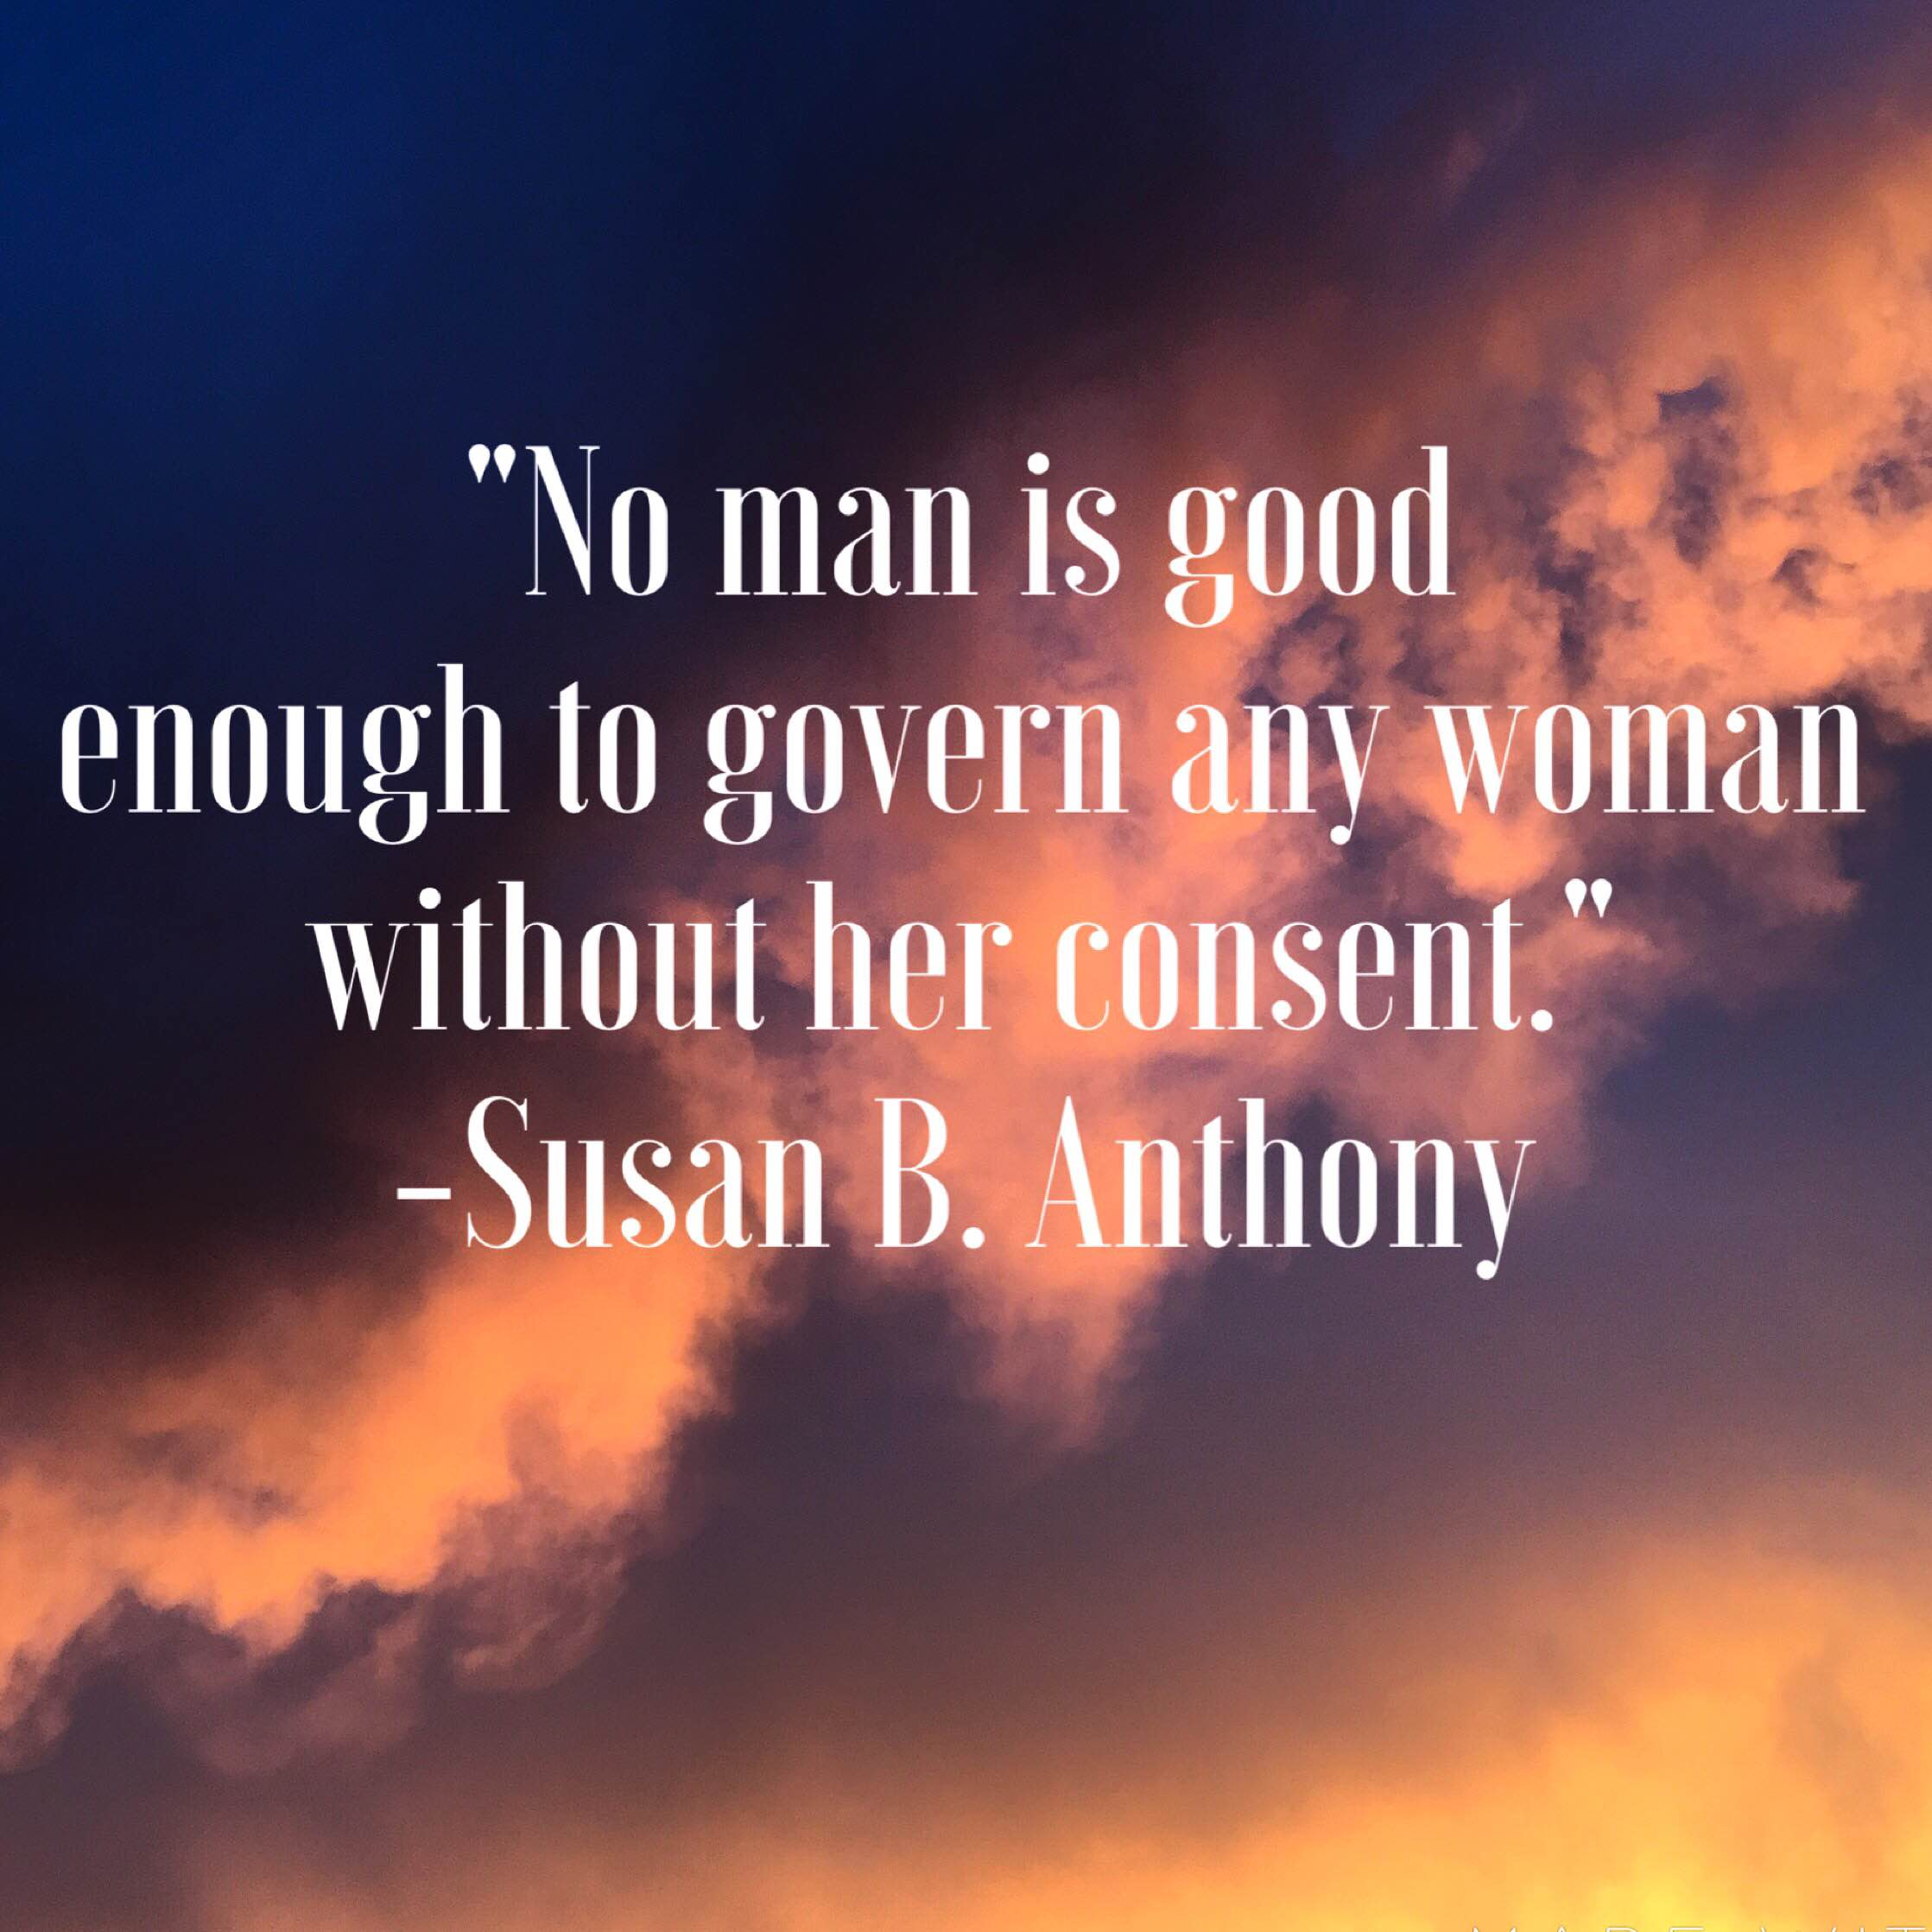 Gender Equality Quotes Quotes To Celebrate Equality  Ellevate